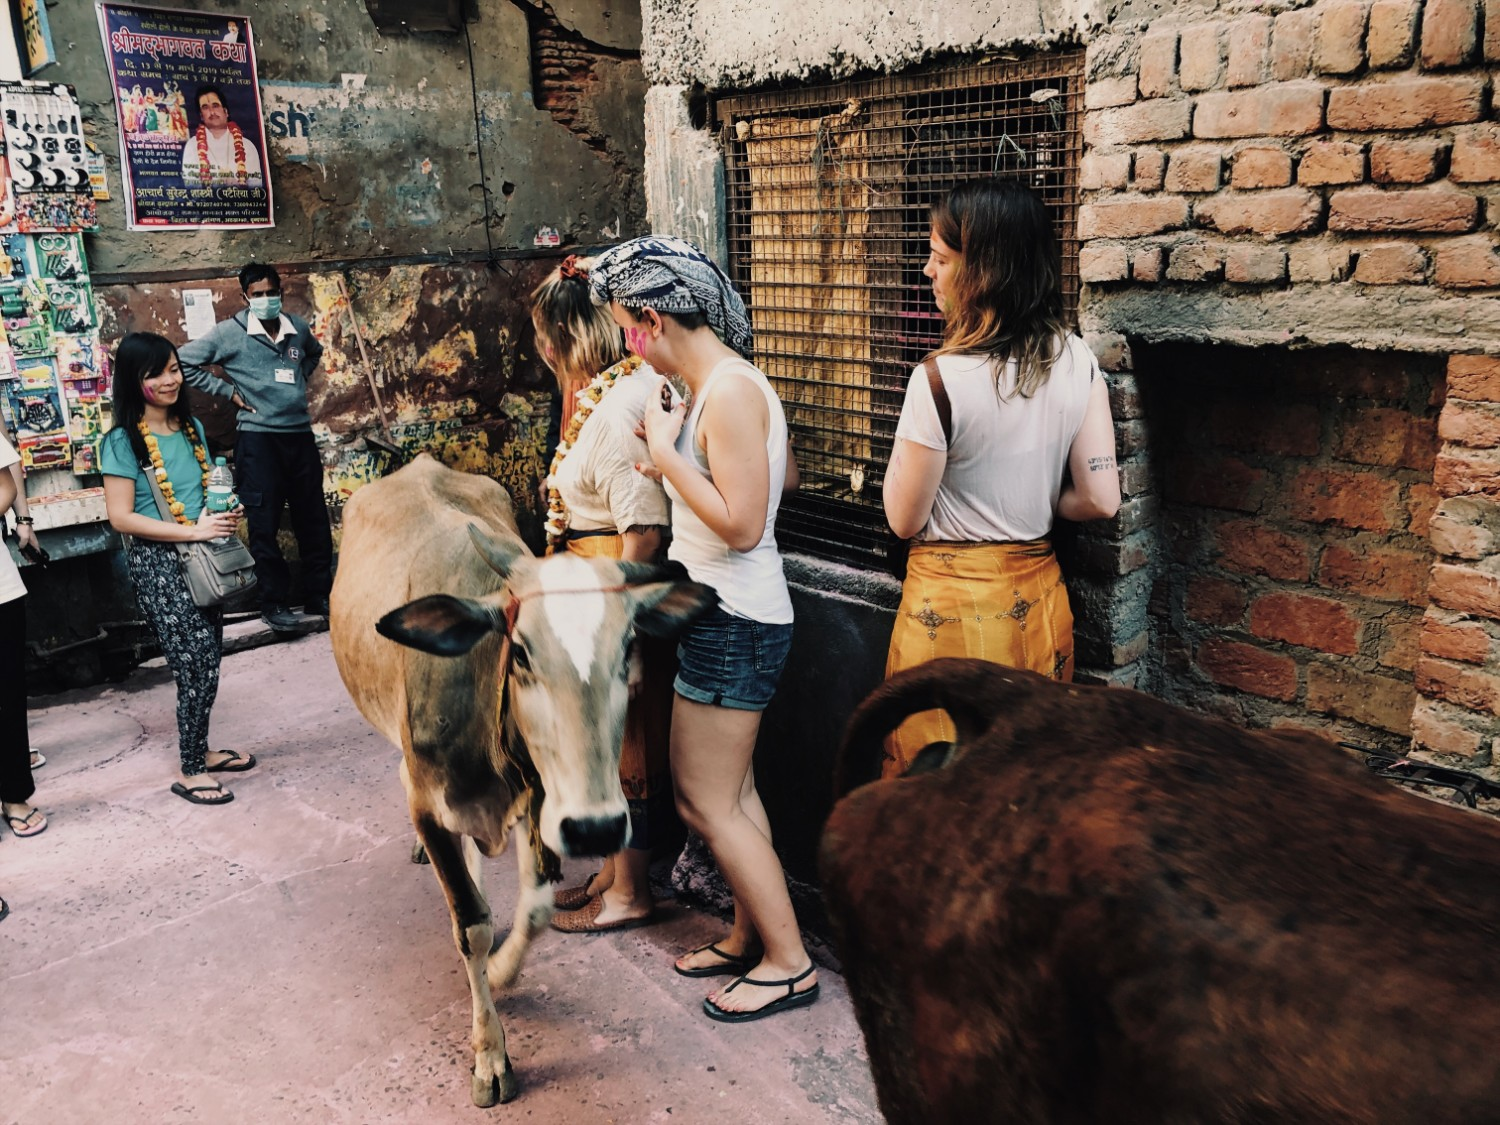 Women standing with a cow on an Origin Travels tour in India for Holi